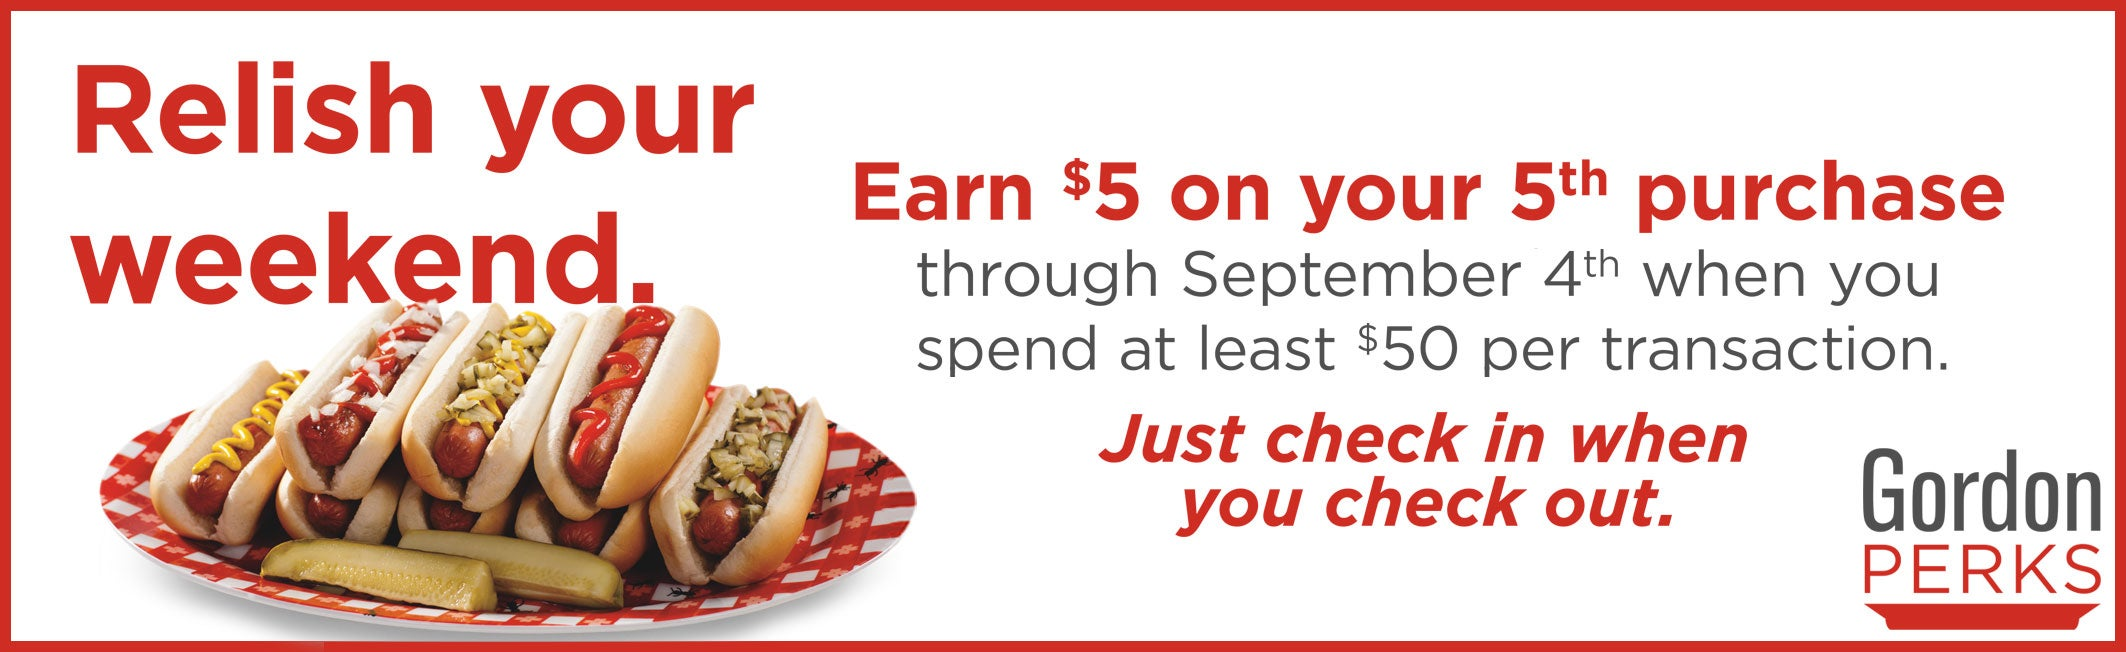 Earn $5 on your 5th purchase. Learn how!